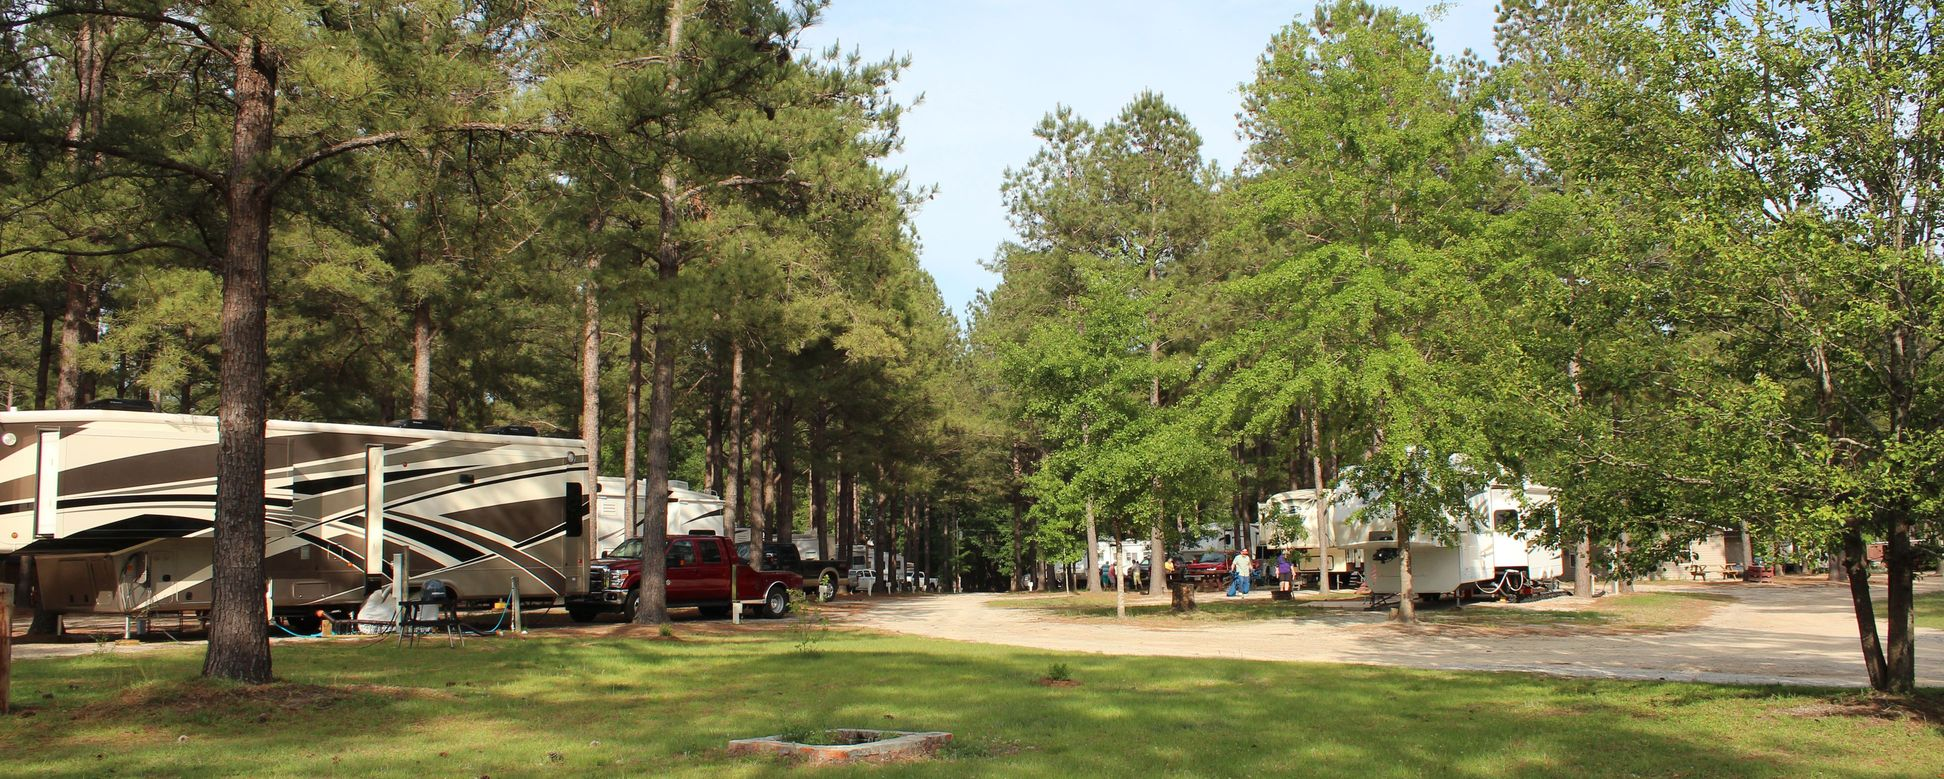 Beaver Run Rv Park Peaceful Camping In The Pines